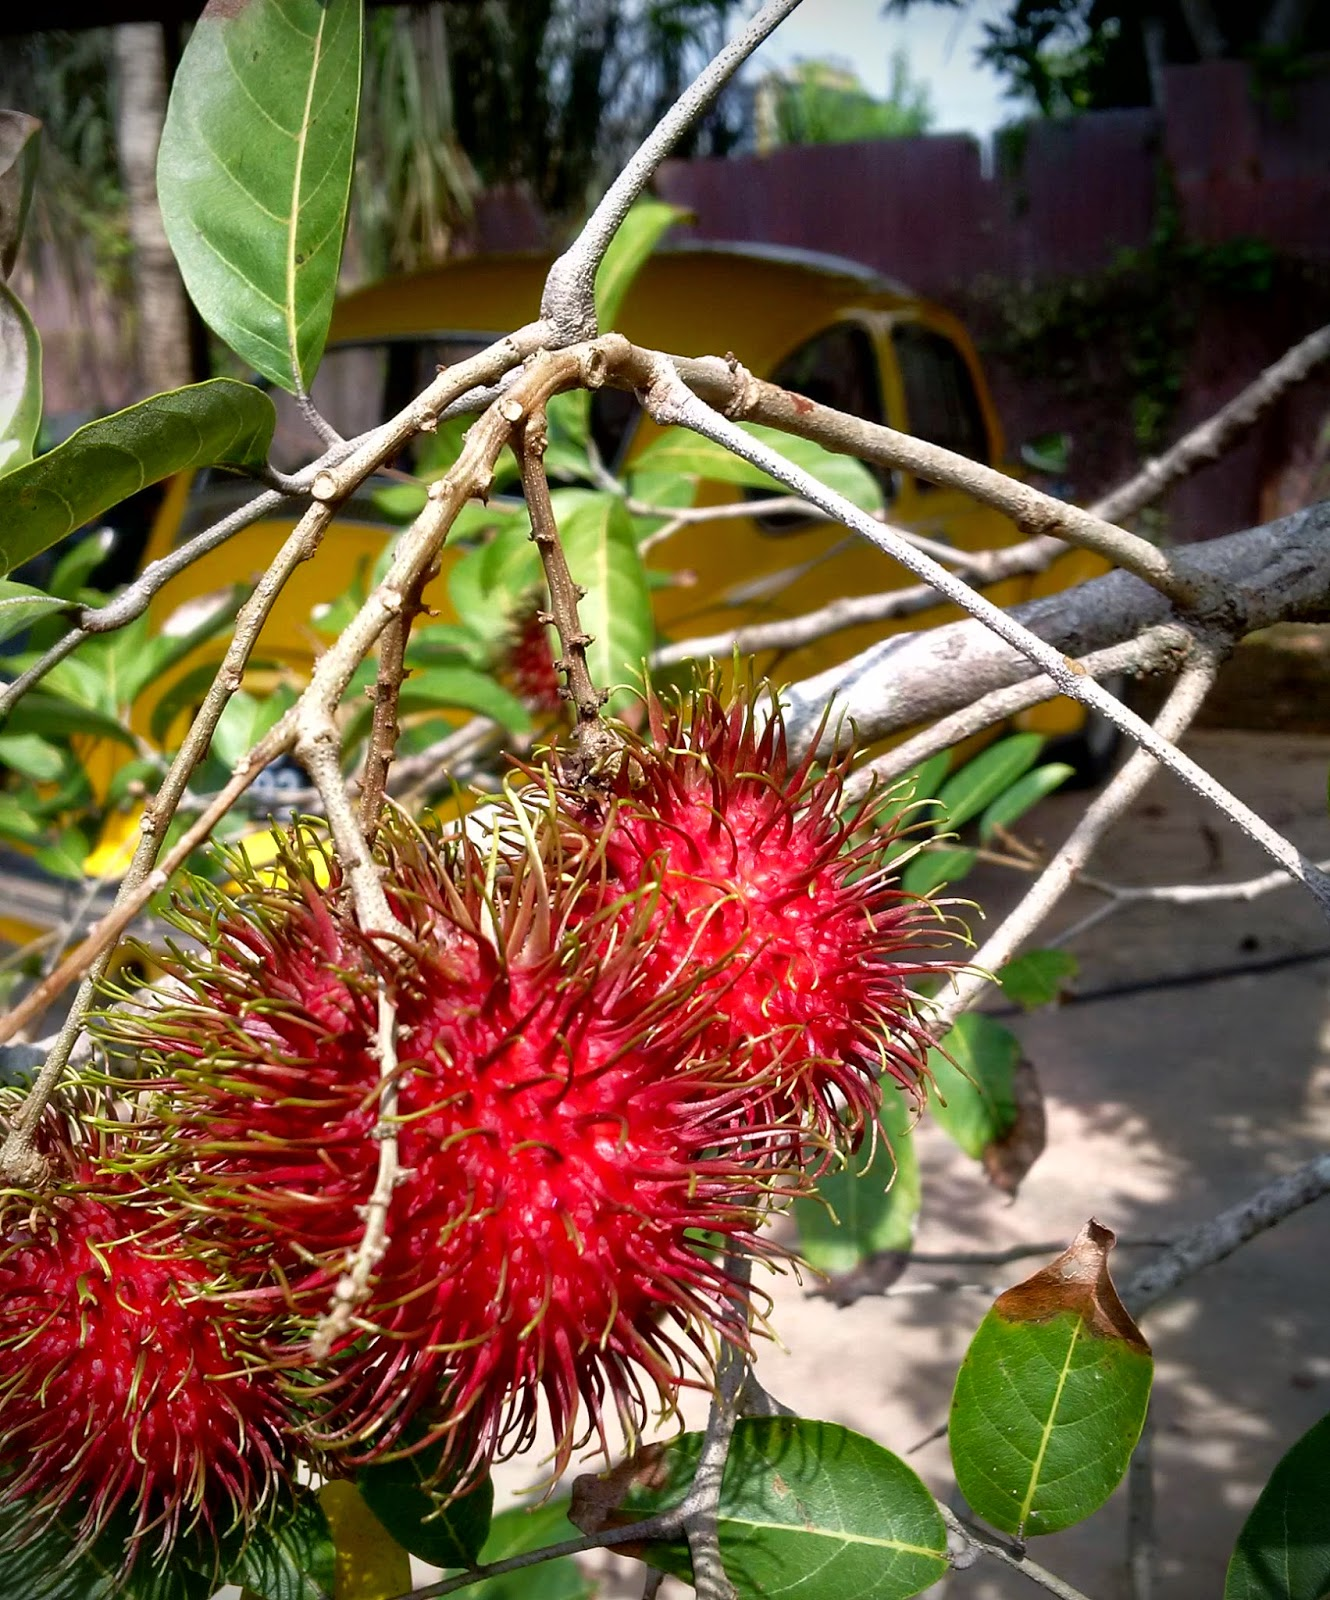 rambutan benefits, rambutan vs lychee, rambutan seeds, rambutan nutrition, rambutan how to eat, rambutan in spanish, rambutan in hindi, disadvantages of rambutan,rambutan fruit, rambutan fruit in tamil, how to plant rambutan tree, rambutan facts, rambutan fruit vs lychee, rambutan fruit in telugu, rambutan leaf disease, rambutan fertility, longan nutrition data, rambutan seed nutrition facts, rambutan seeds narcotic, rambutan superfood, fruit drop in rambutan, how to prune rambutan tree, rambutan production in india